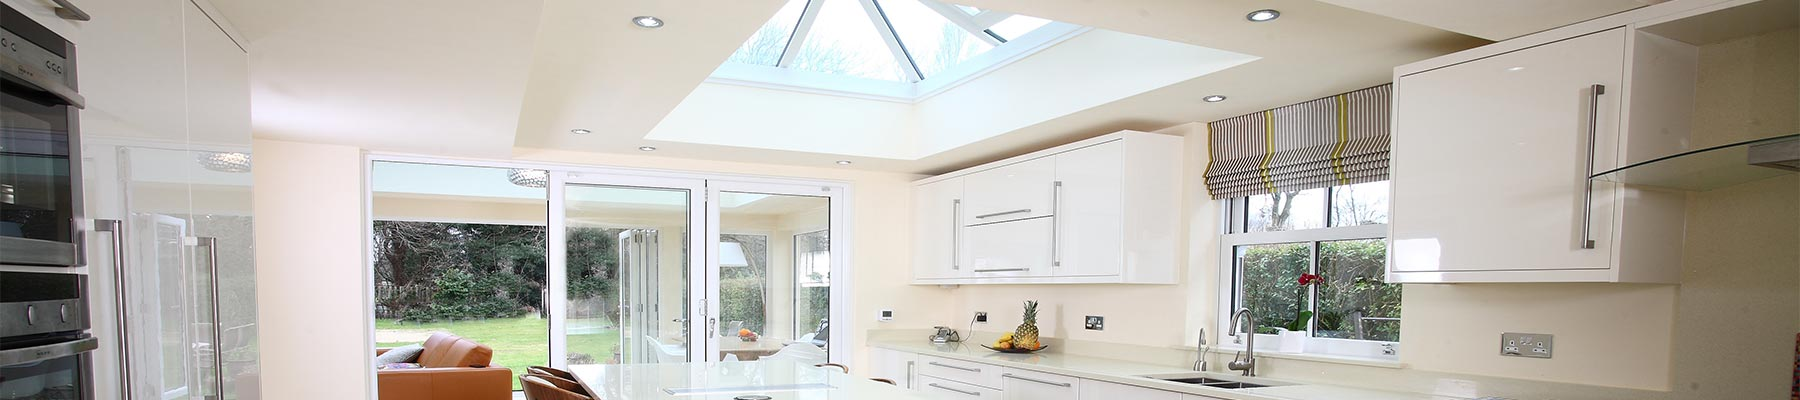 JSS Installations - Windows, Doors & Conservatories